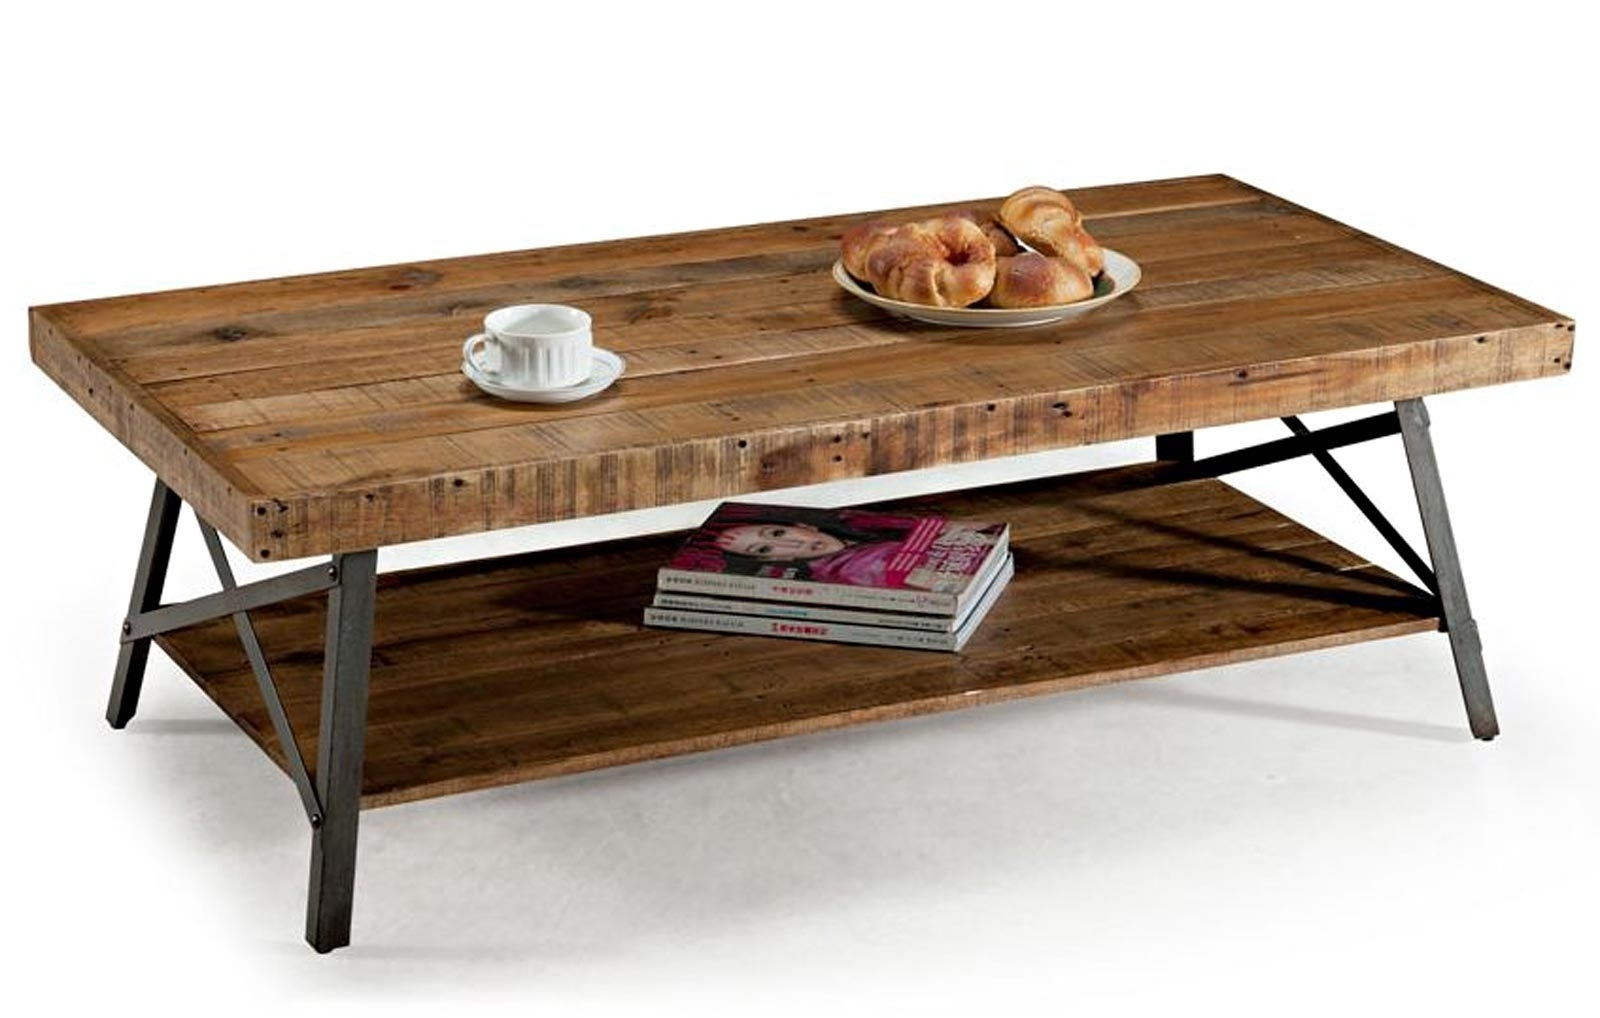 Recent Modern Rustic Coffee Tables With Rustic Coffee Table Sets Modern Rustic Coffee Tables Ideas Silver (View 15 of 20)